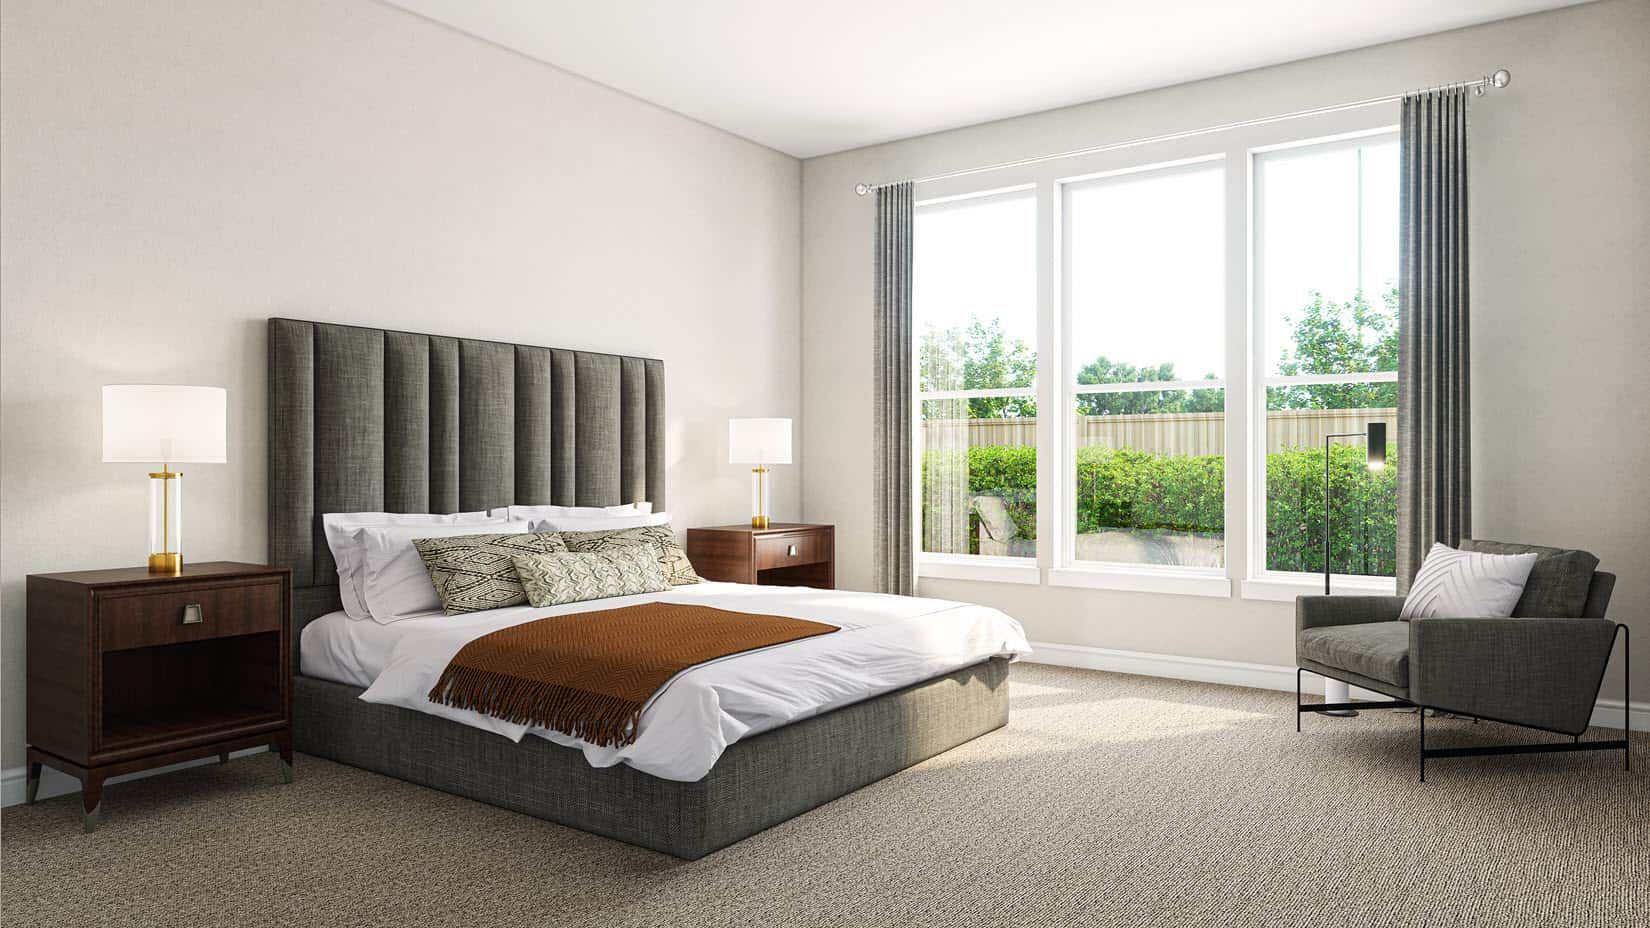 Bedroom featured in the Verdin By Tri Pointe Homes in Houston, TX